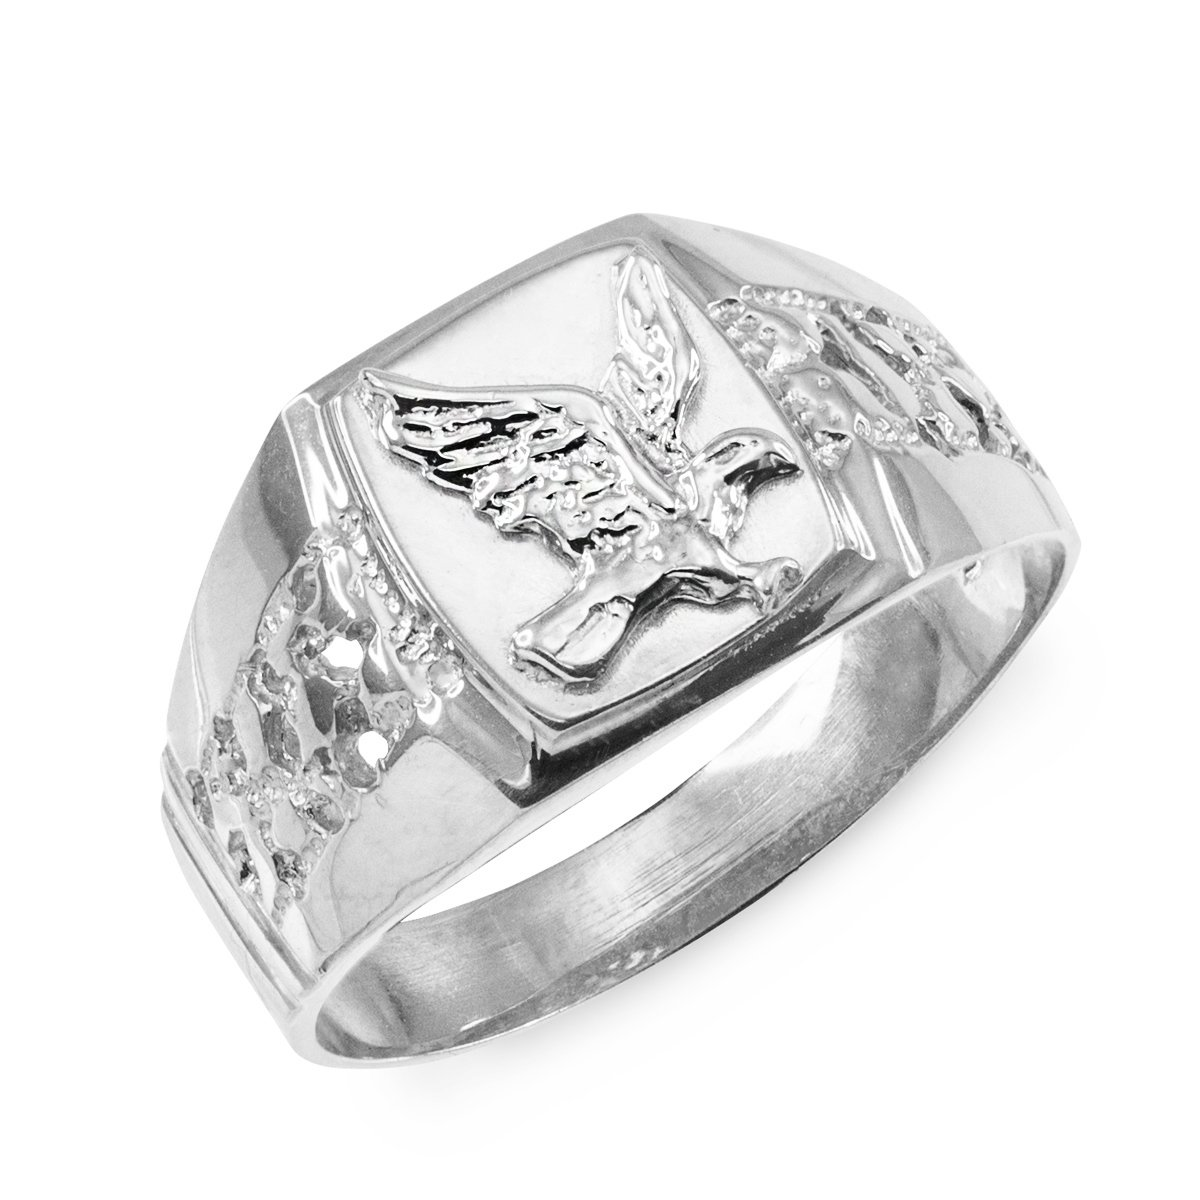 Men's Polished 925 Sterling Silver Open Nugget Band American Eagle Ring (Size 14)